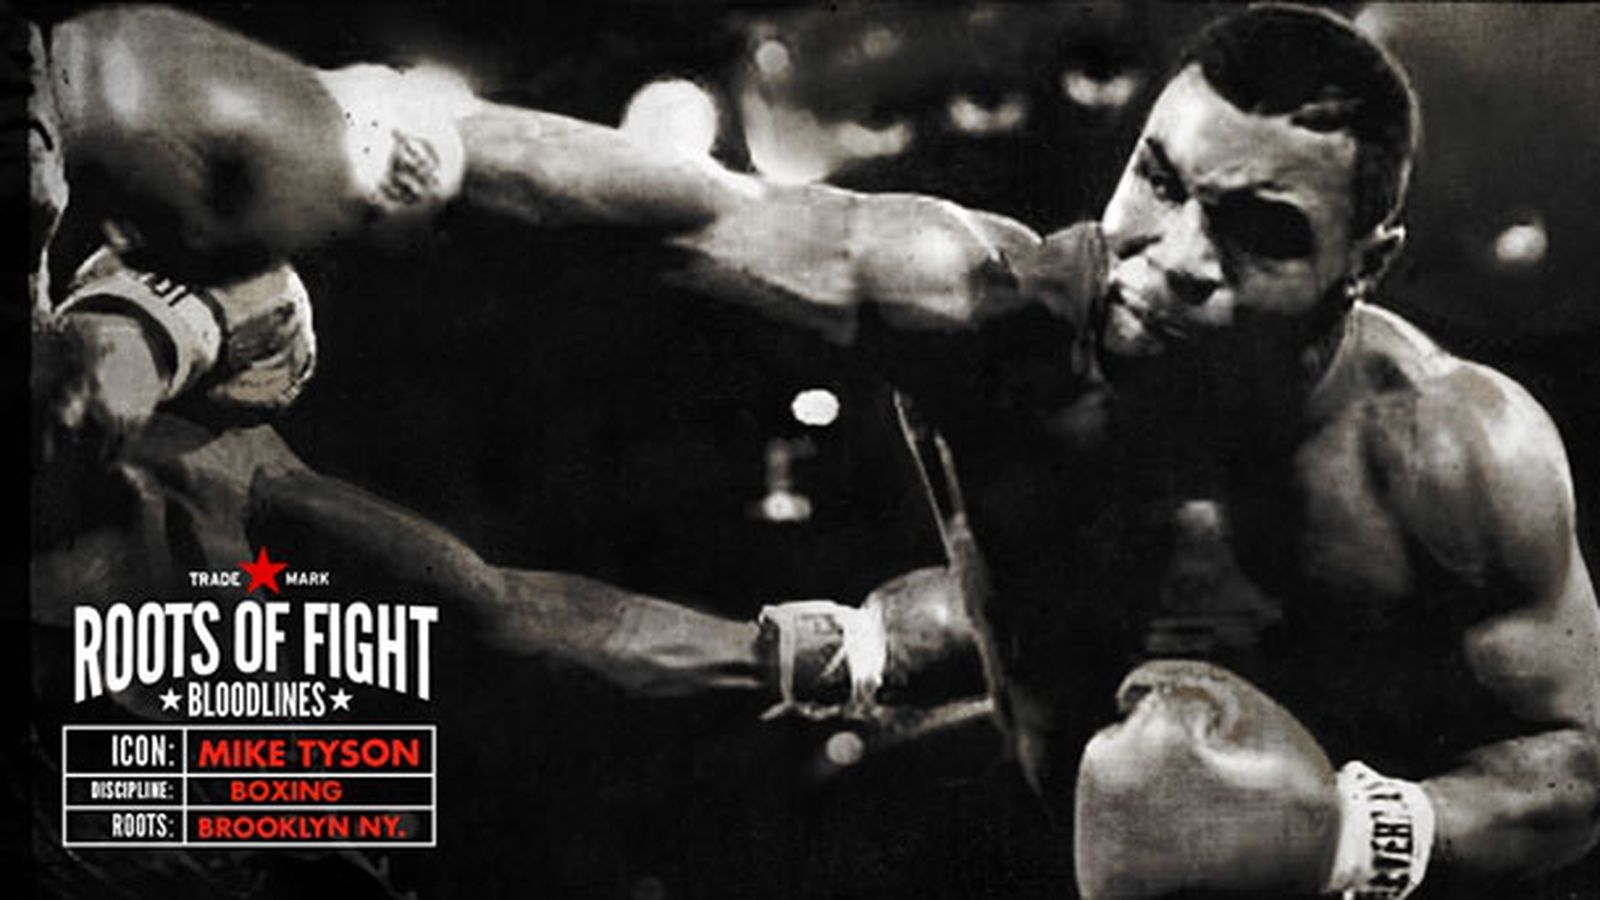 Boxing Ring Wallpaper Hd Roots Of Fight Releases Limited Edition Mike Tyson